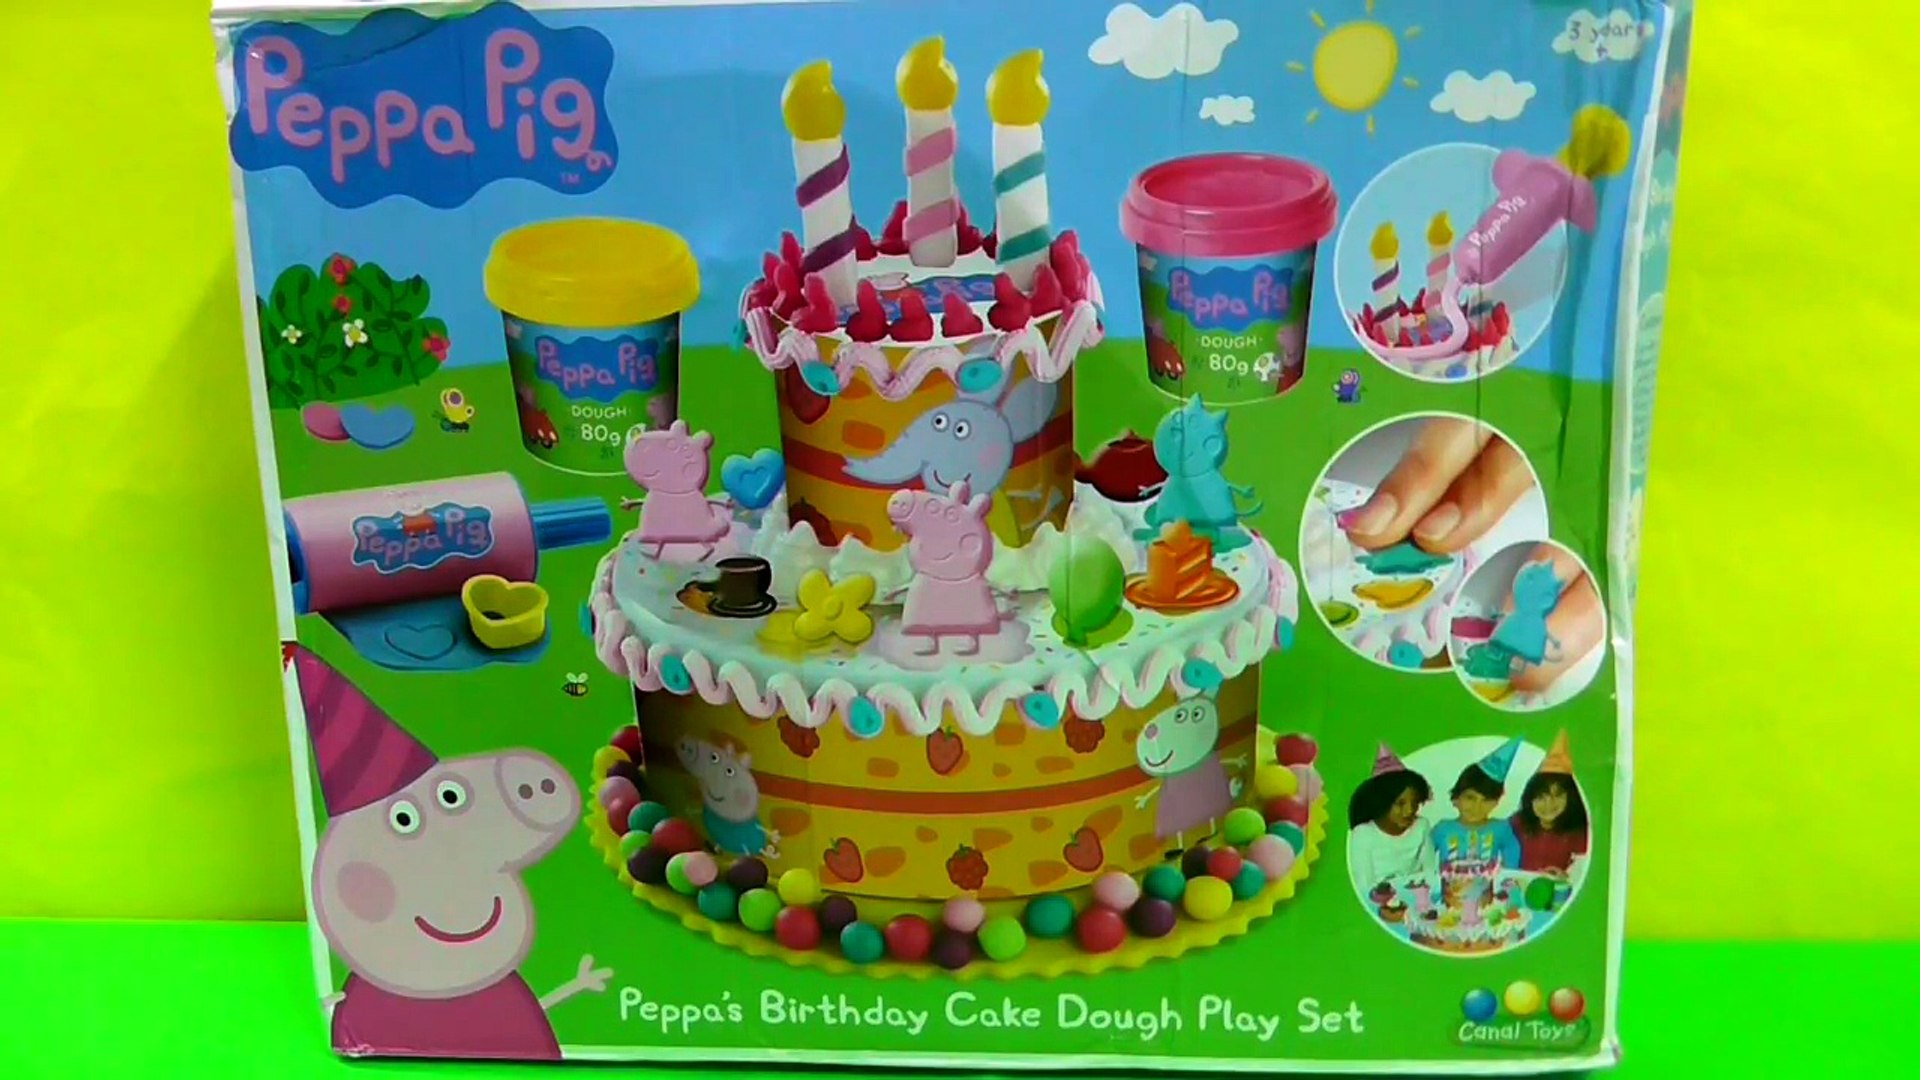 Peppa Pig Play Doh Birthday Party Cake Dough Playset 影片 Dailymotion